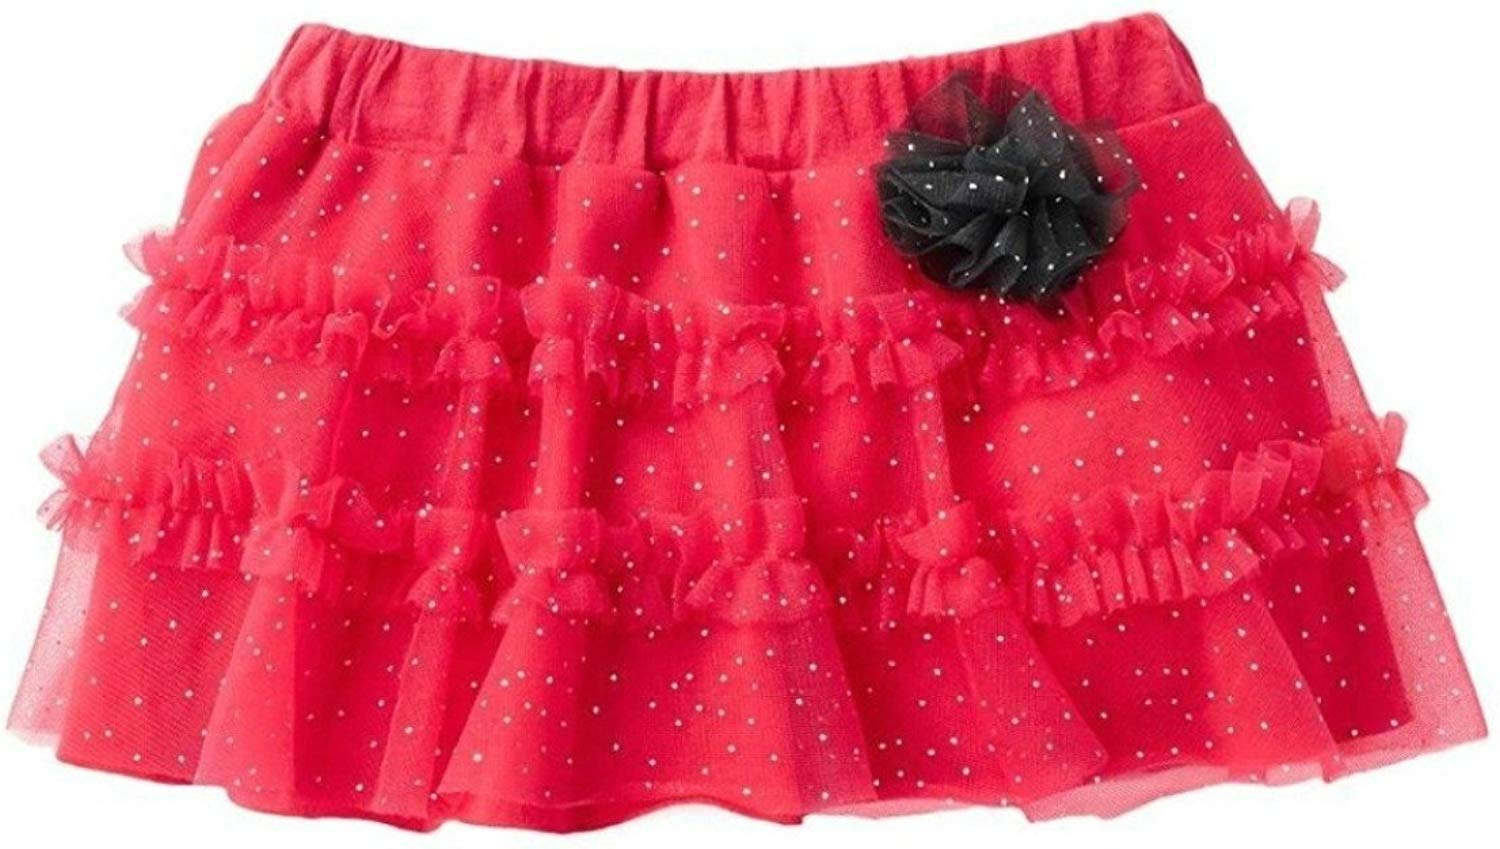 Baby Starters Baby Girls Ruffled Glitter Tulle Tutu Skirt by 9 Months - Hot Pink